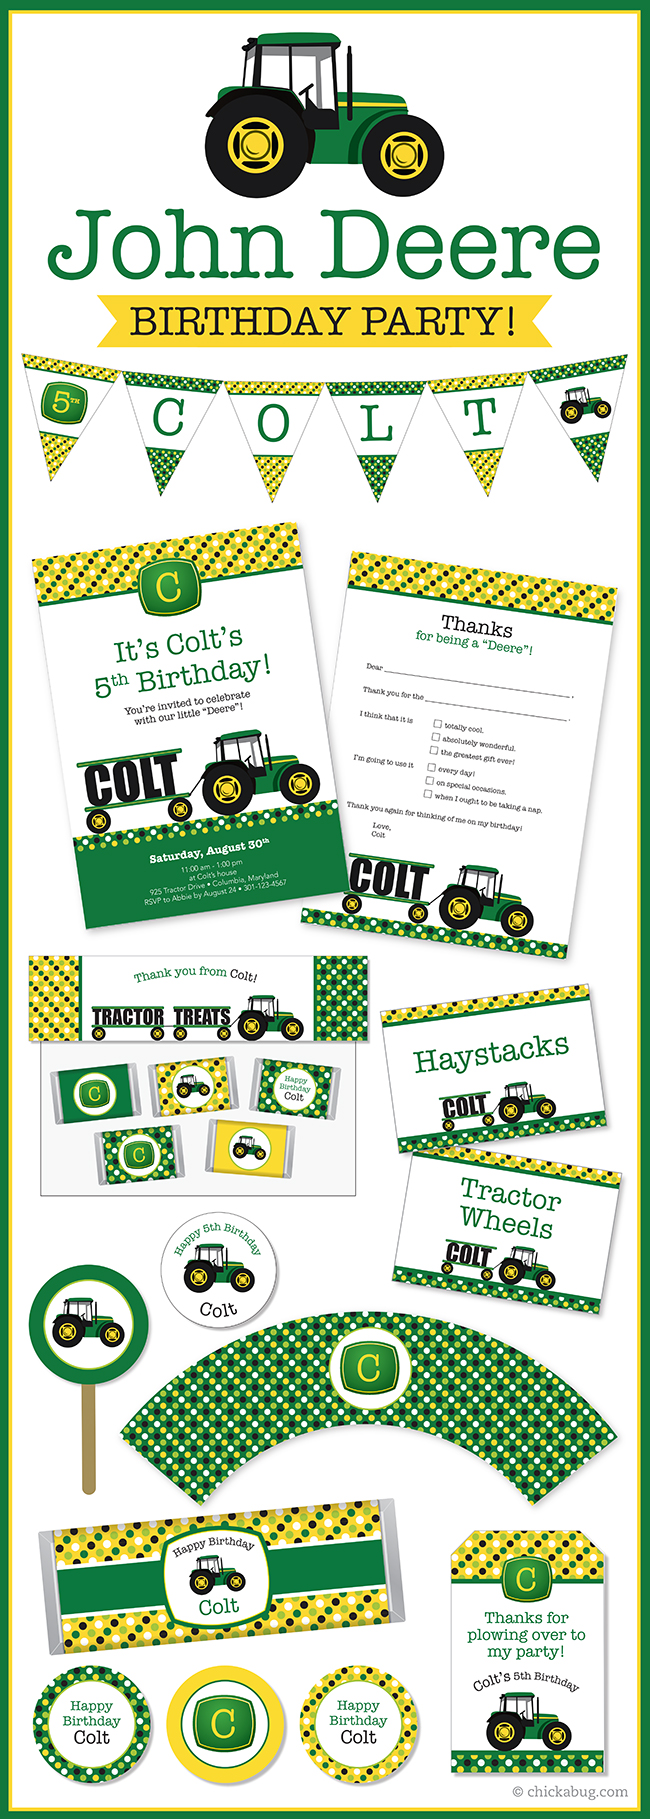 john deere tractor theme party invitations water labels stickers diy party printables - John Deere Party Invitations